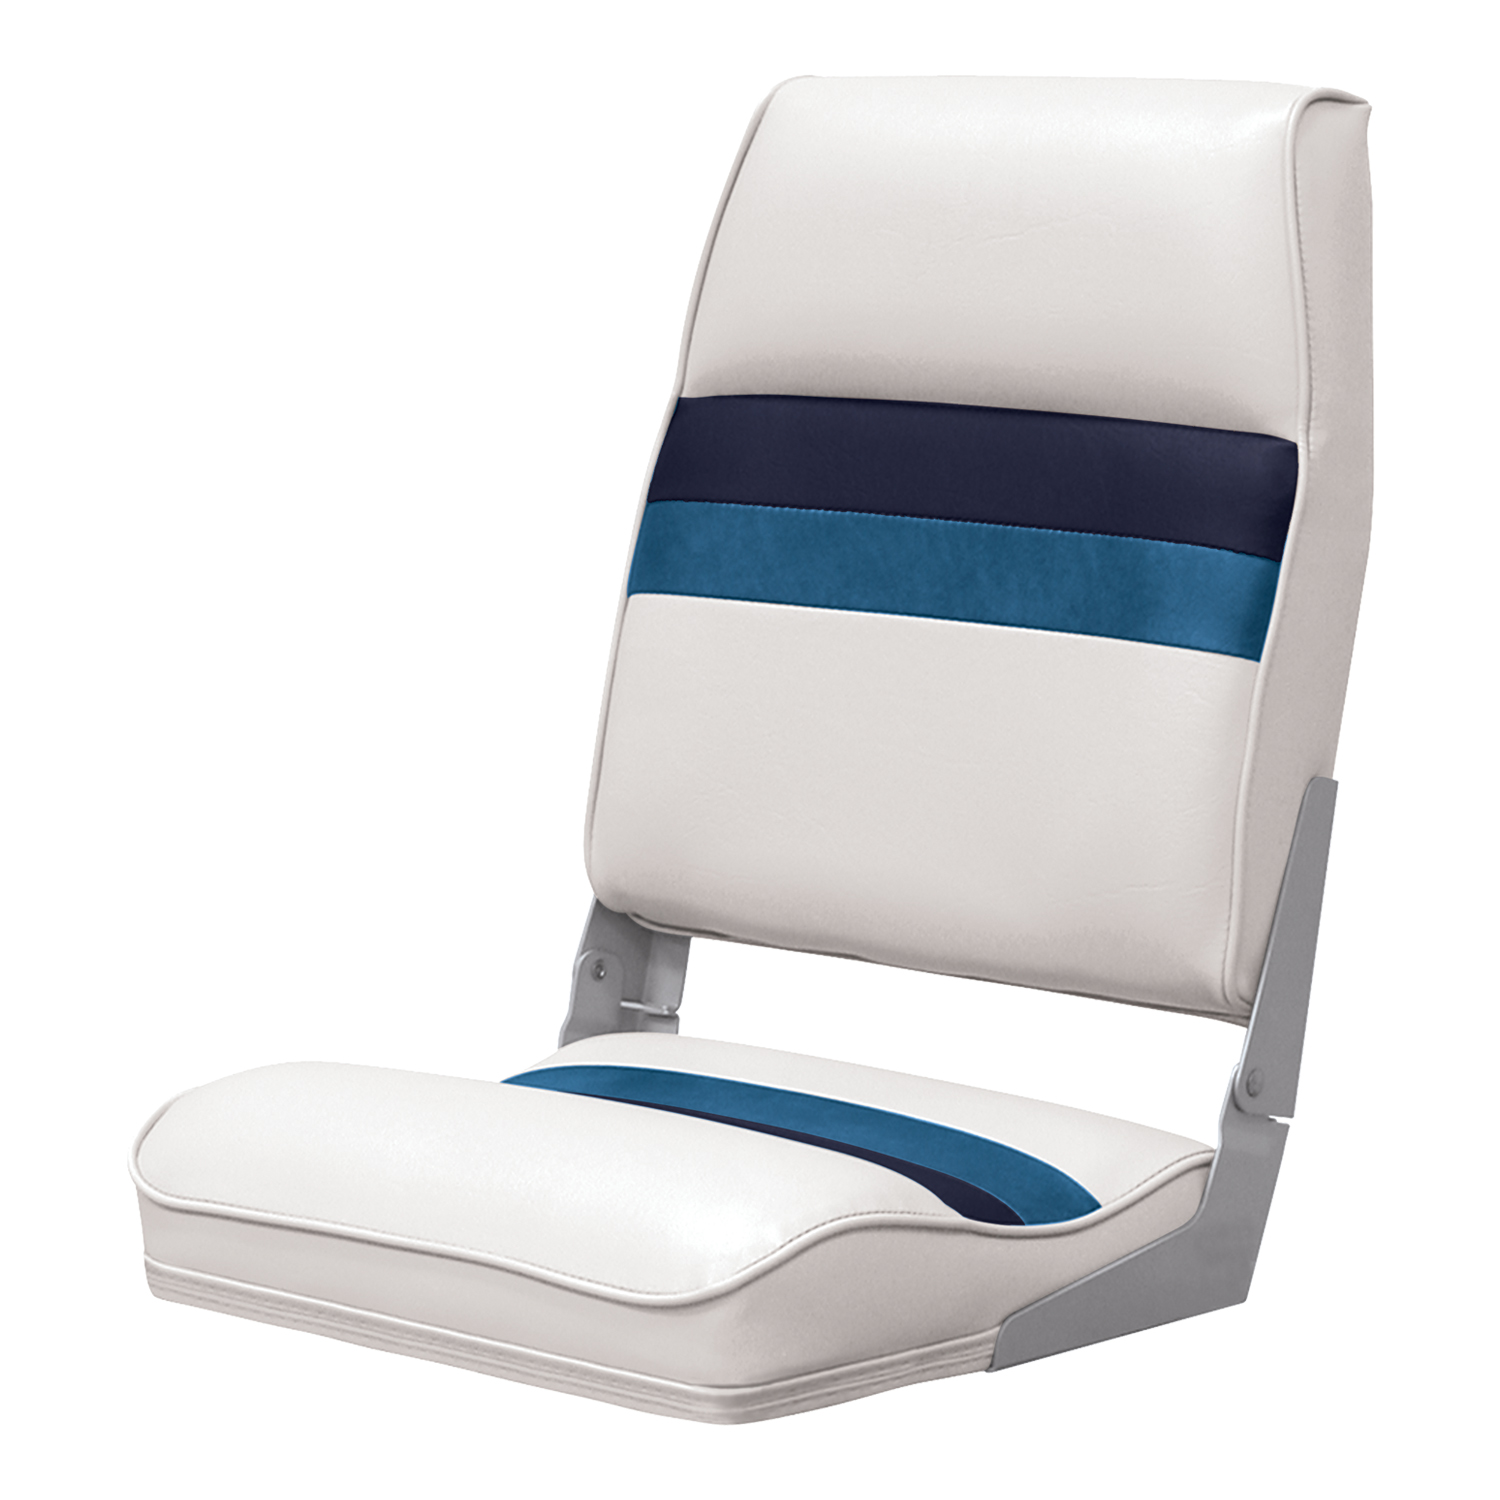 Wise 8WD434LS-1008 Deluxe Pontoon Series High Back Seat, White/Navy/Blue